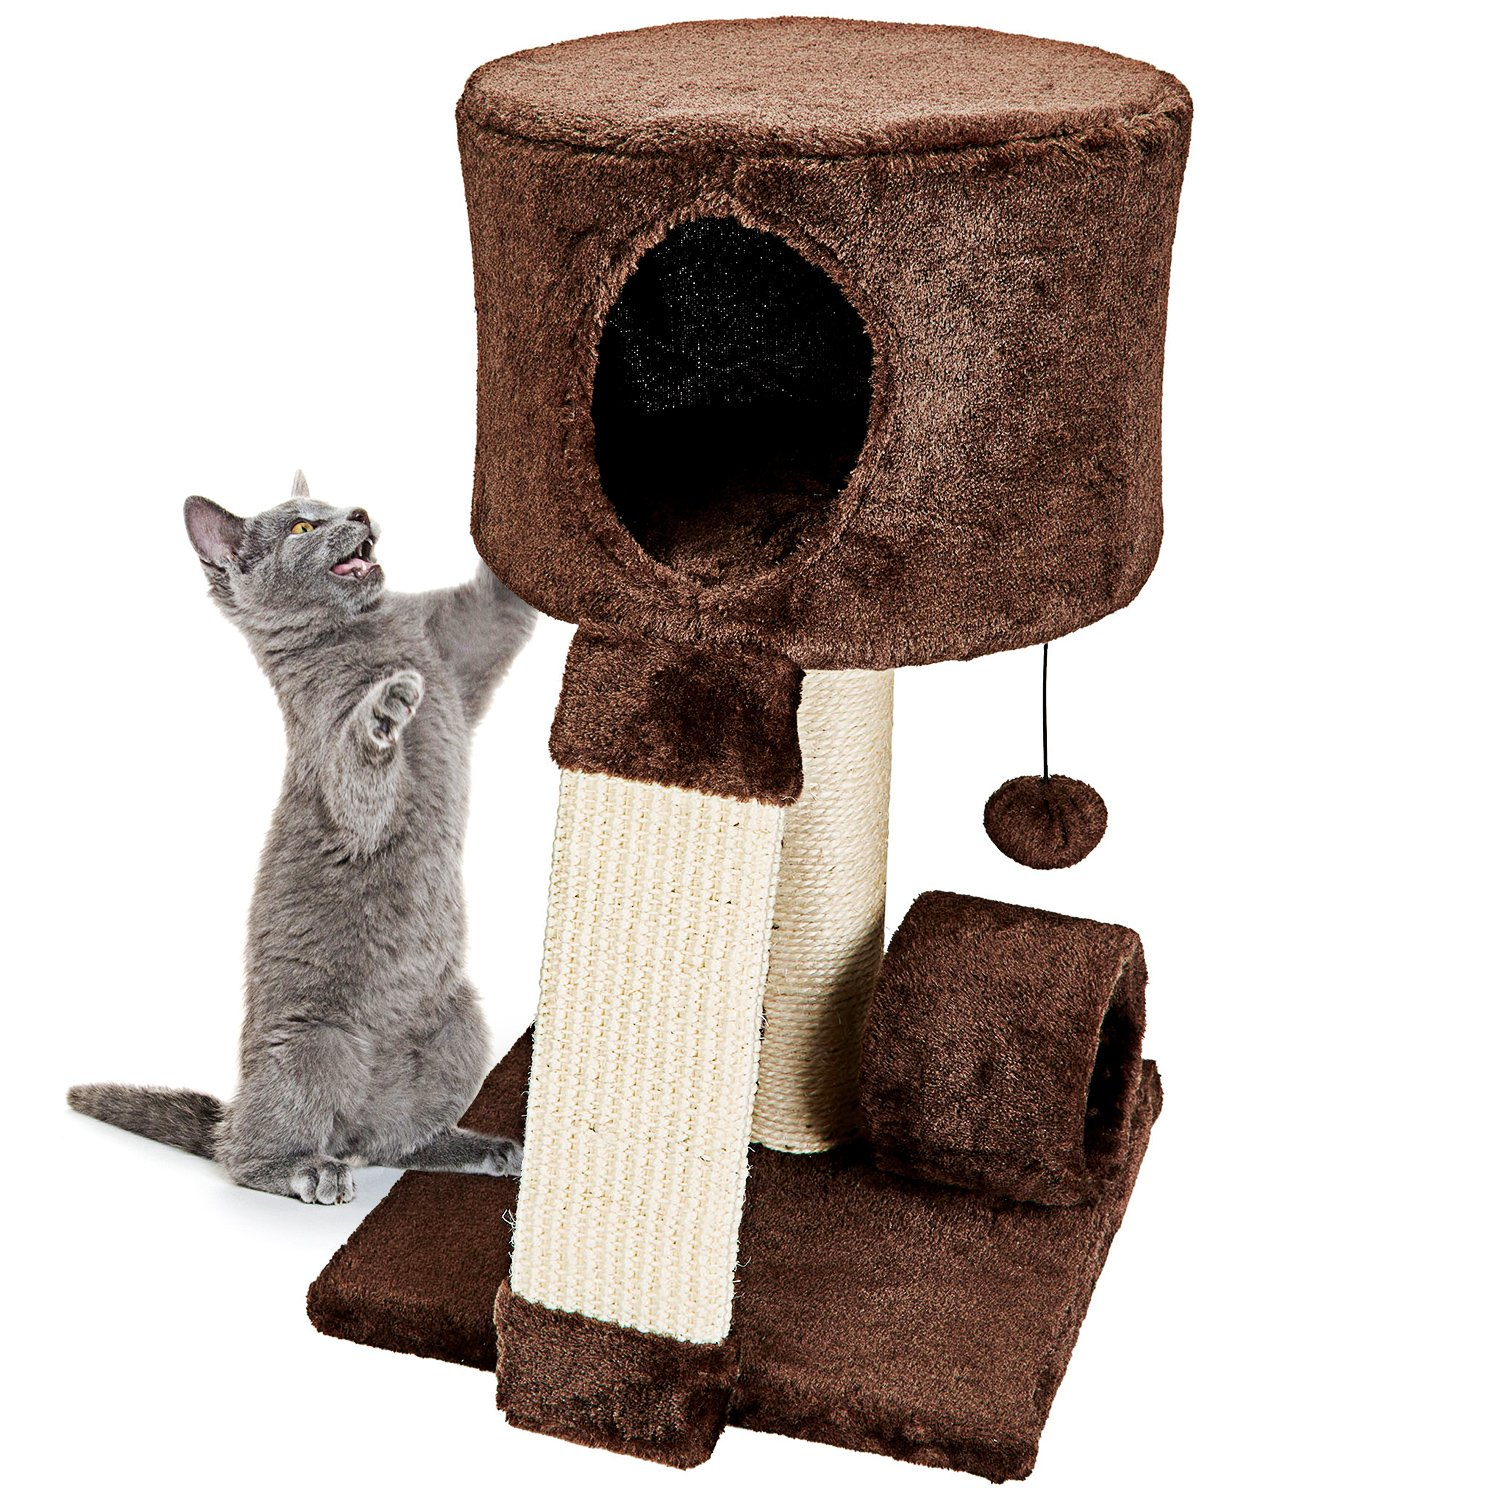 Animals Favorite Cat Condo Perch, Cat Tree with Scratch Post by Animals Favorite